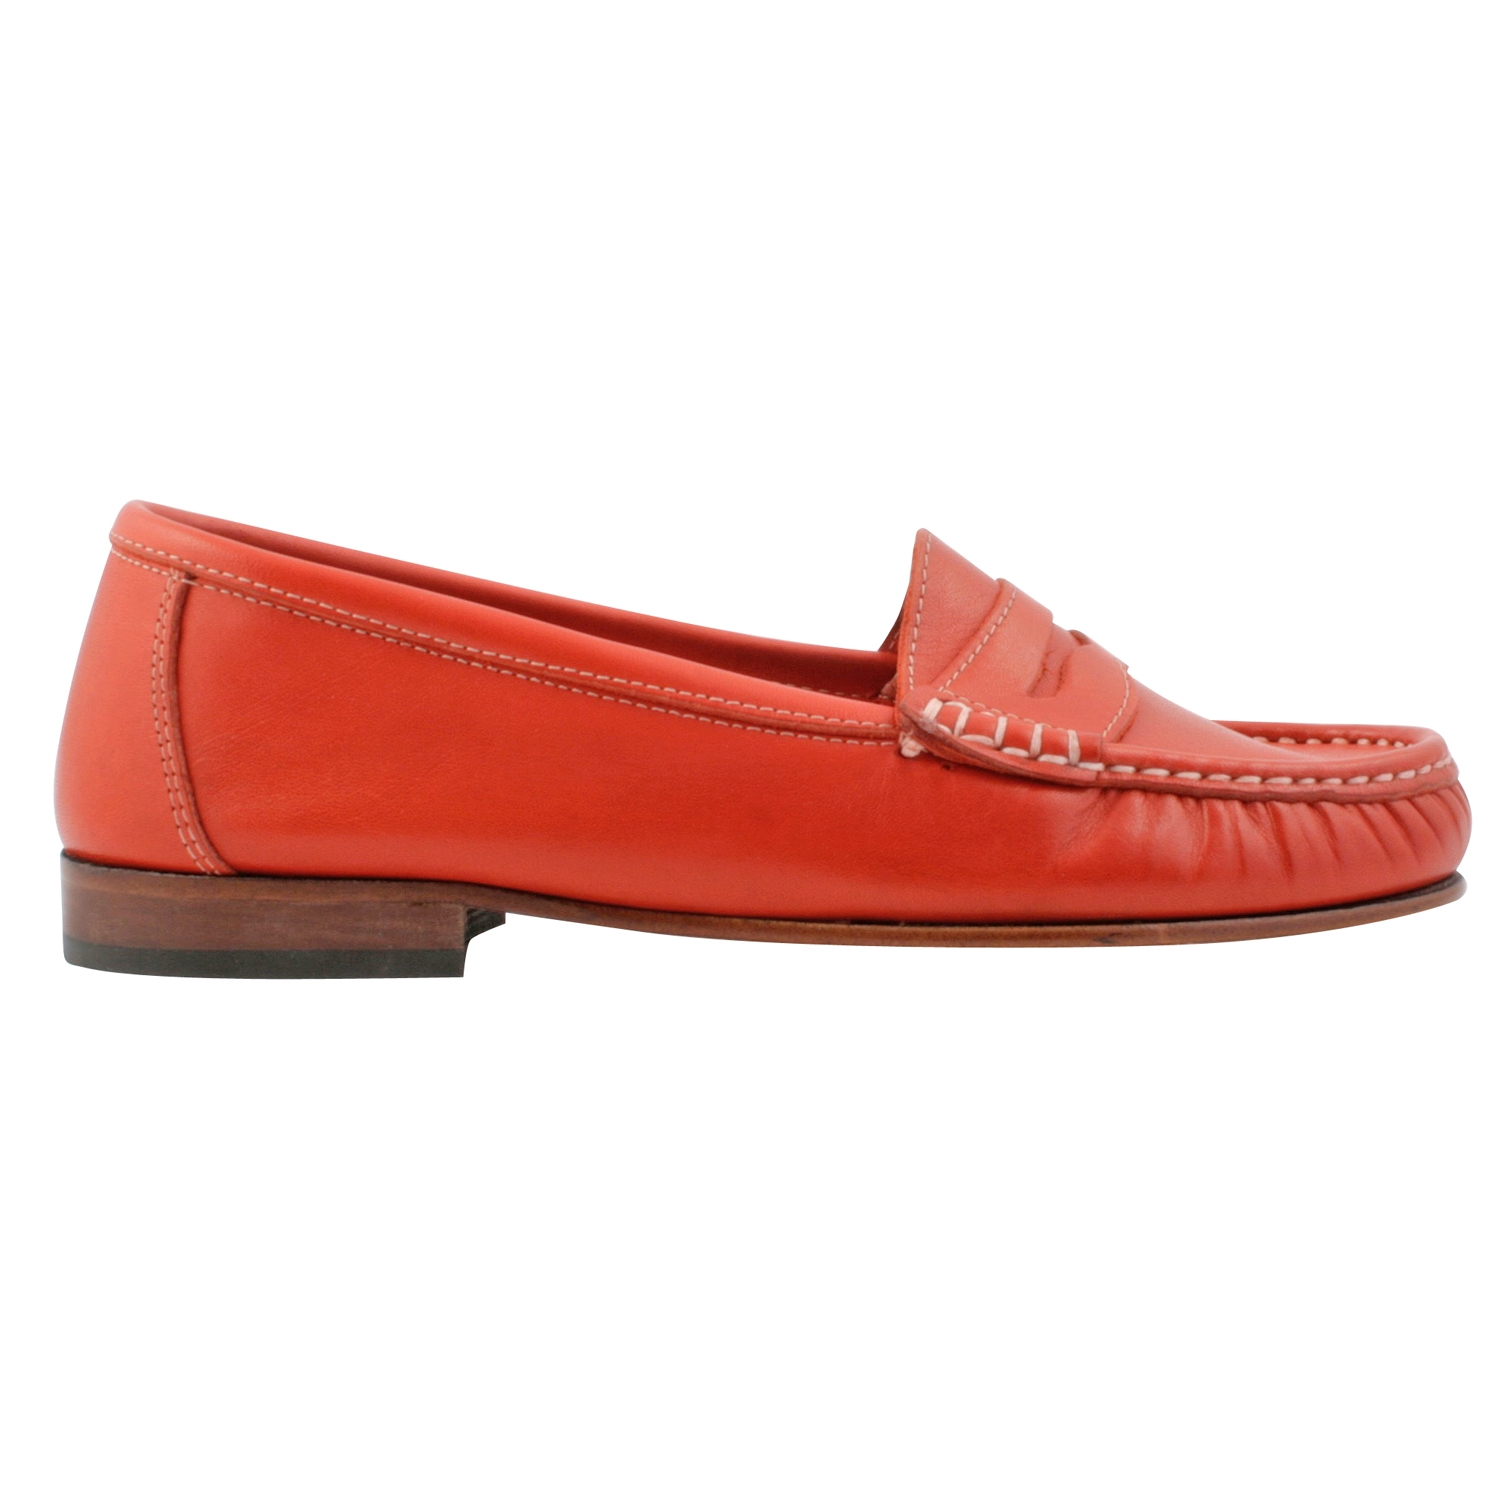 Exclusif Paris Riviera - Mocassins en cuir - rouge